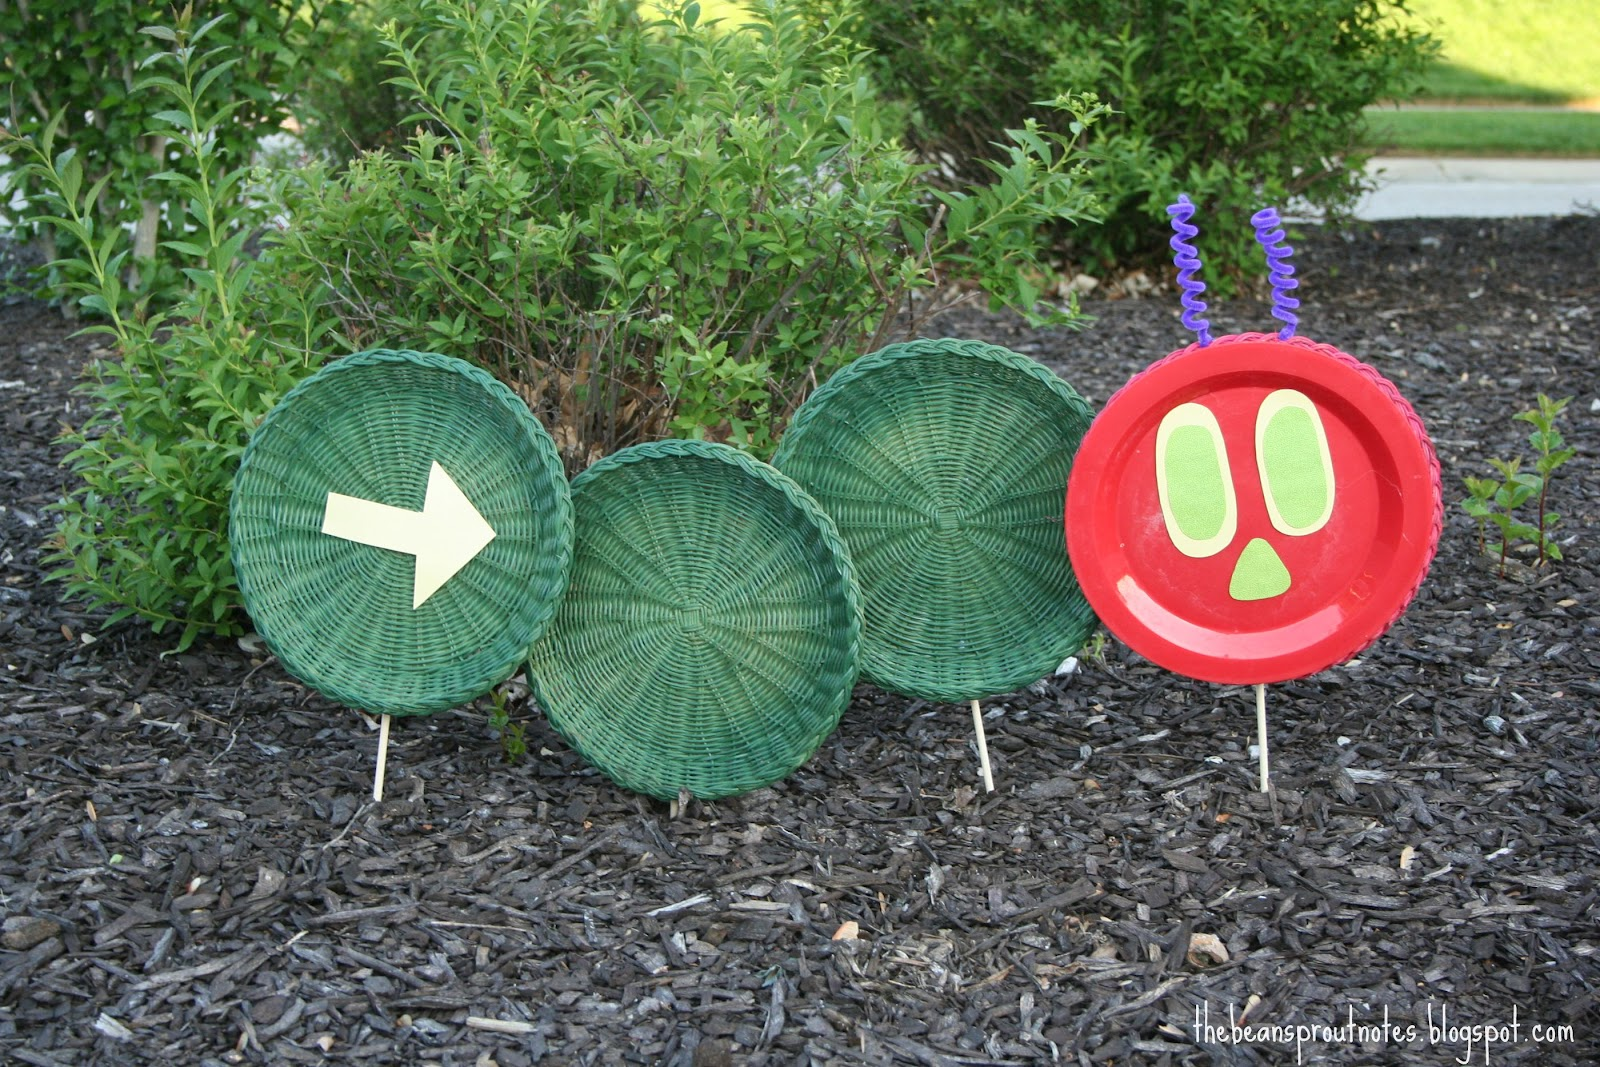 A Very Hungry Caterpillar 2nd Birthday Party & The Bean Sprout Notes: A Very Hungry Caterpillar 2nd Birthday Party